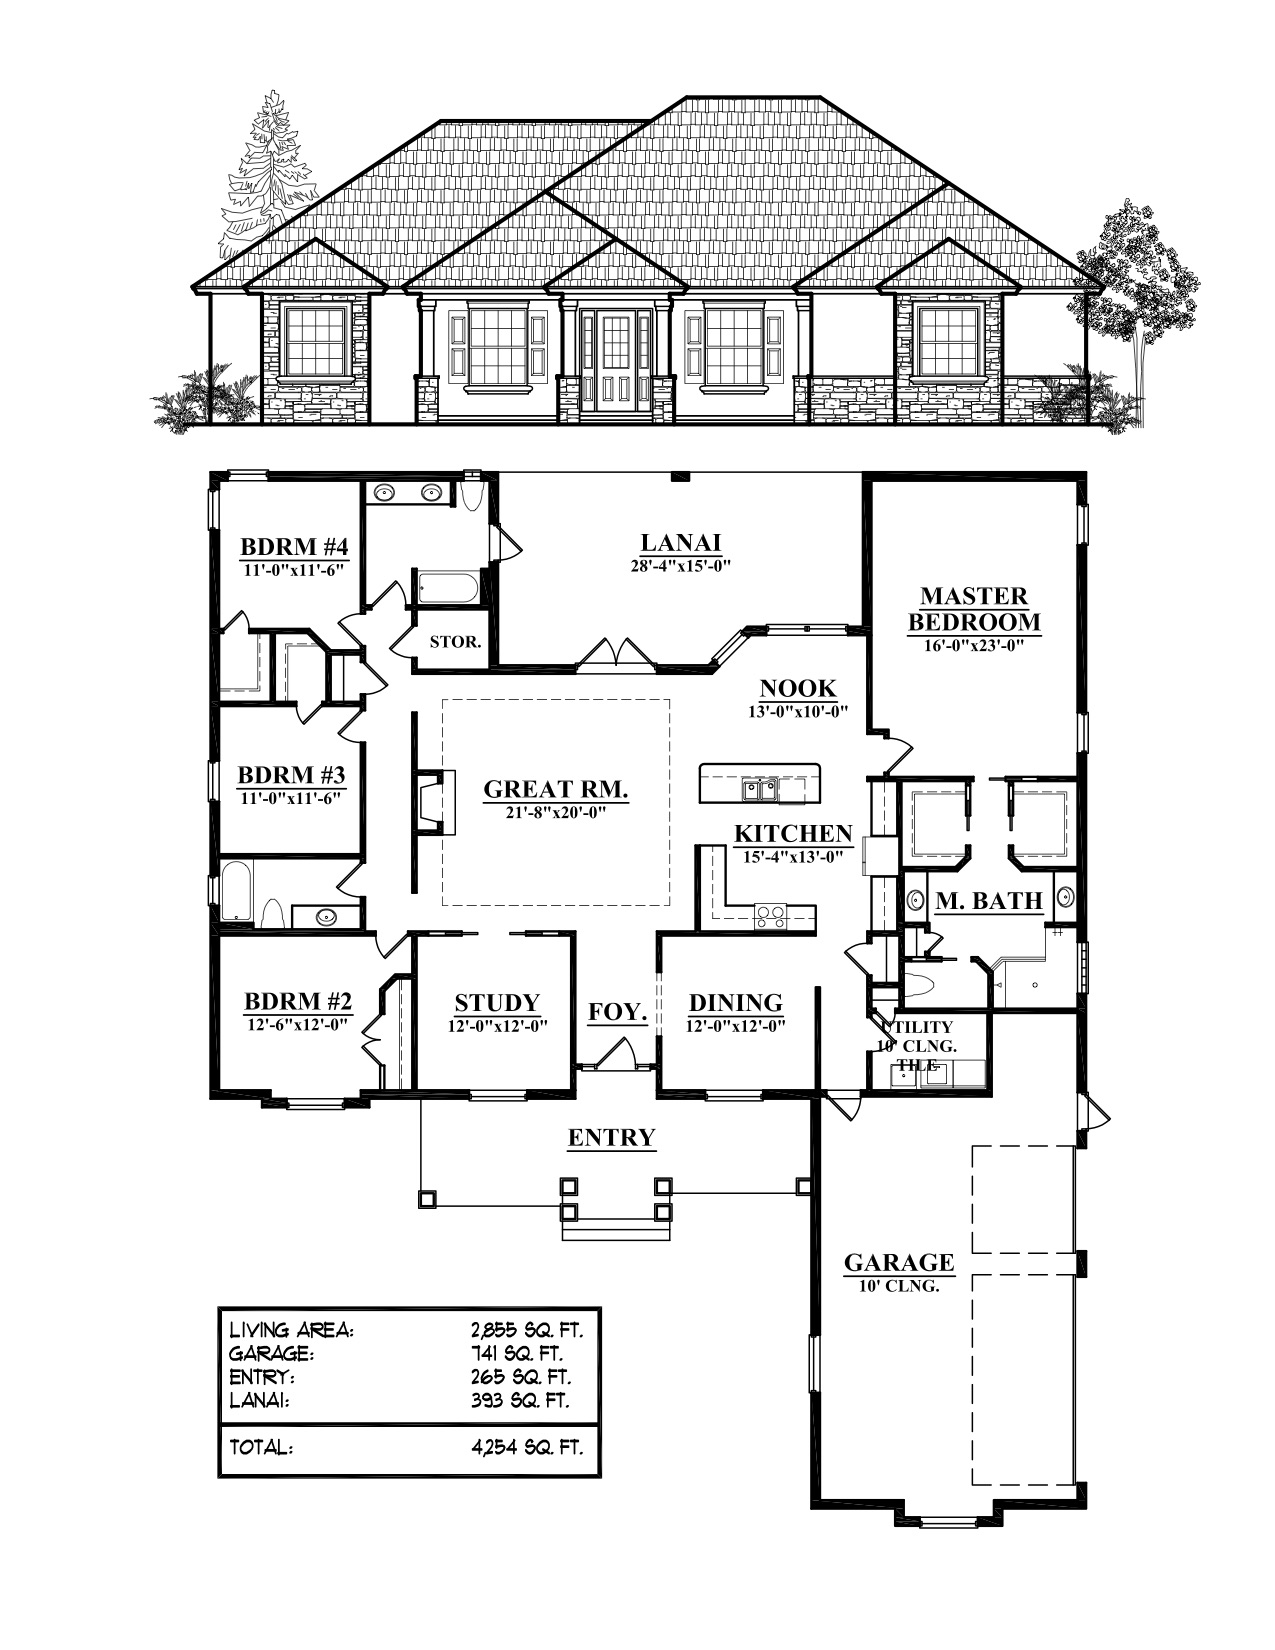 Ernie White Floor Plans_0010_DREAMWEAVER PROOF.jpg